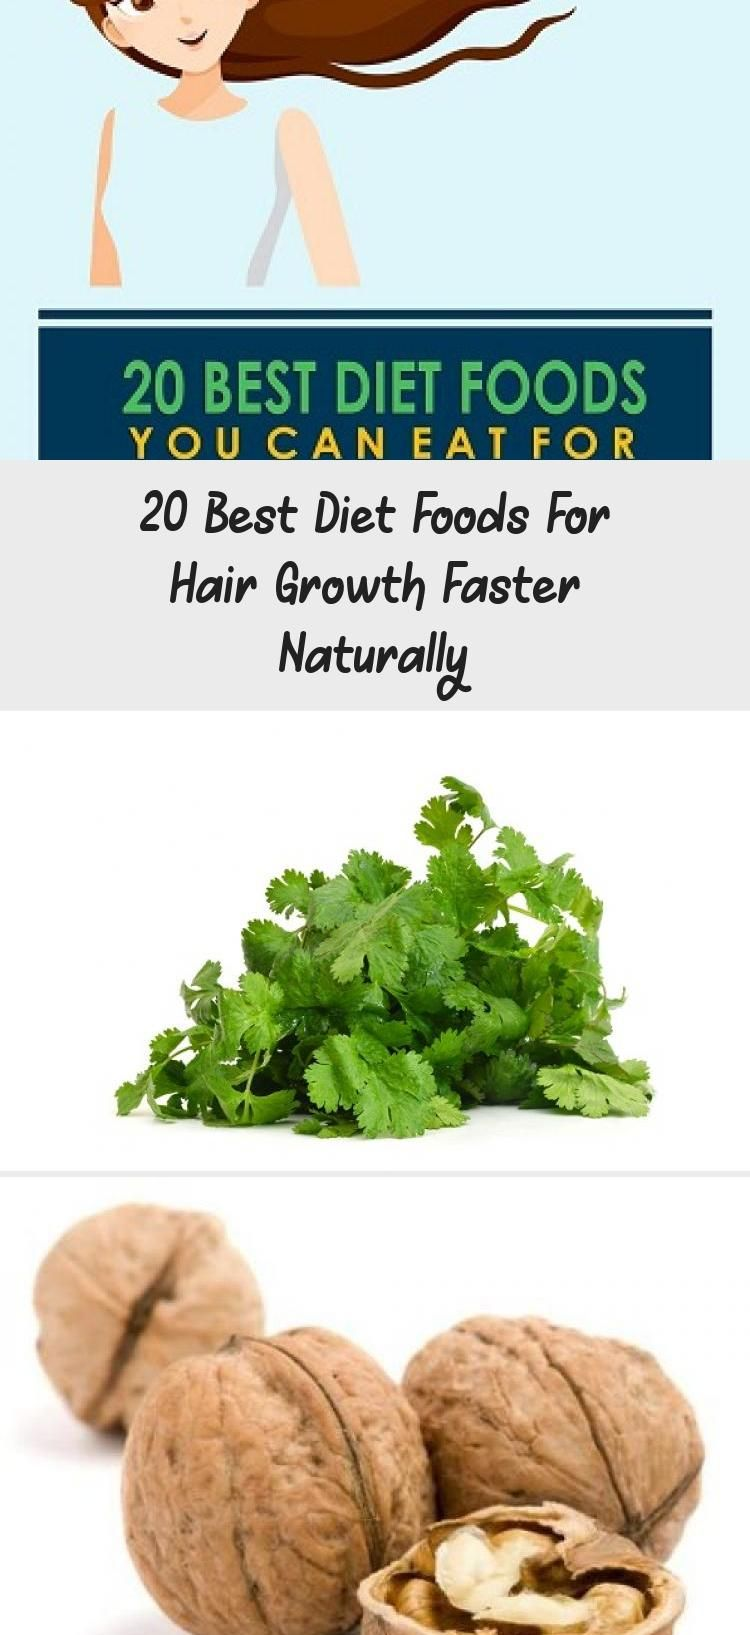 20 Best Diet Foods For Hair Growth Faster Naturally. #hairgrowthDoterra #Naturalhairgrowth #hairgrowthEgg #Babyhairgrowth #hairgrowthBaldSpots #fasterhairgrowth